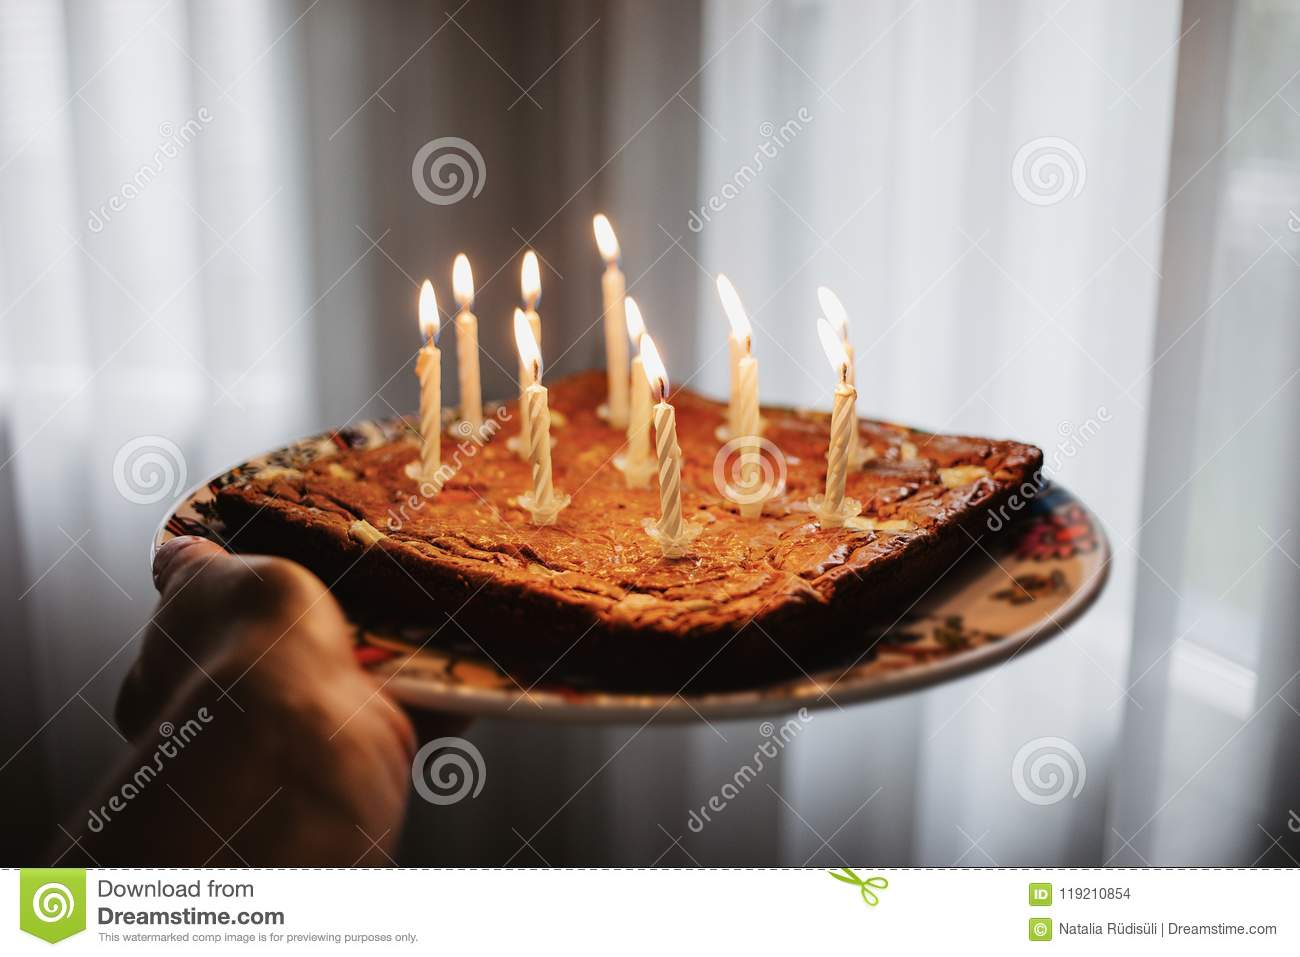 Pleasant Chocolate Birthday Cake With Eleven Candles Burning Stock Photo Birthday Cards Printable Trancafe Filternl